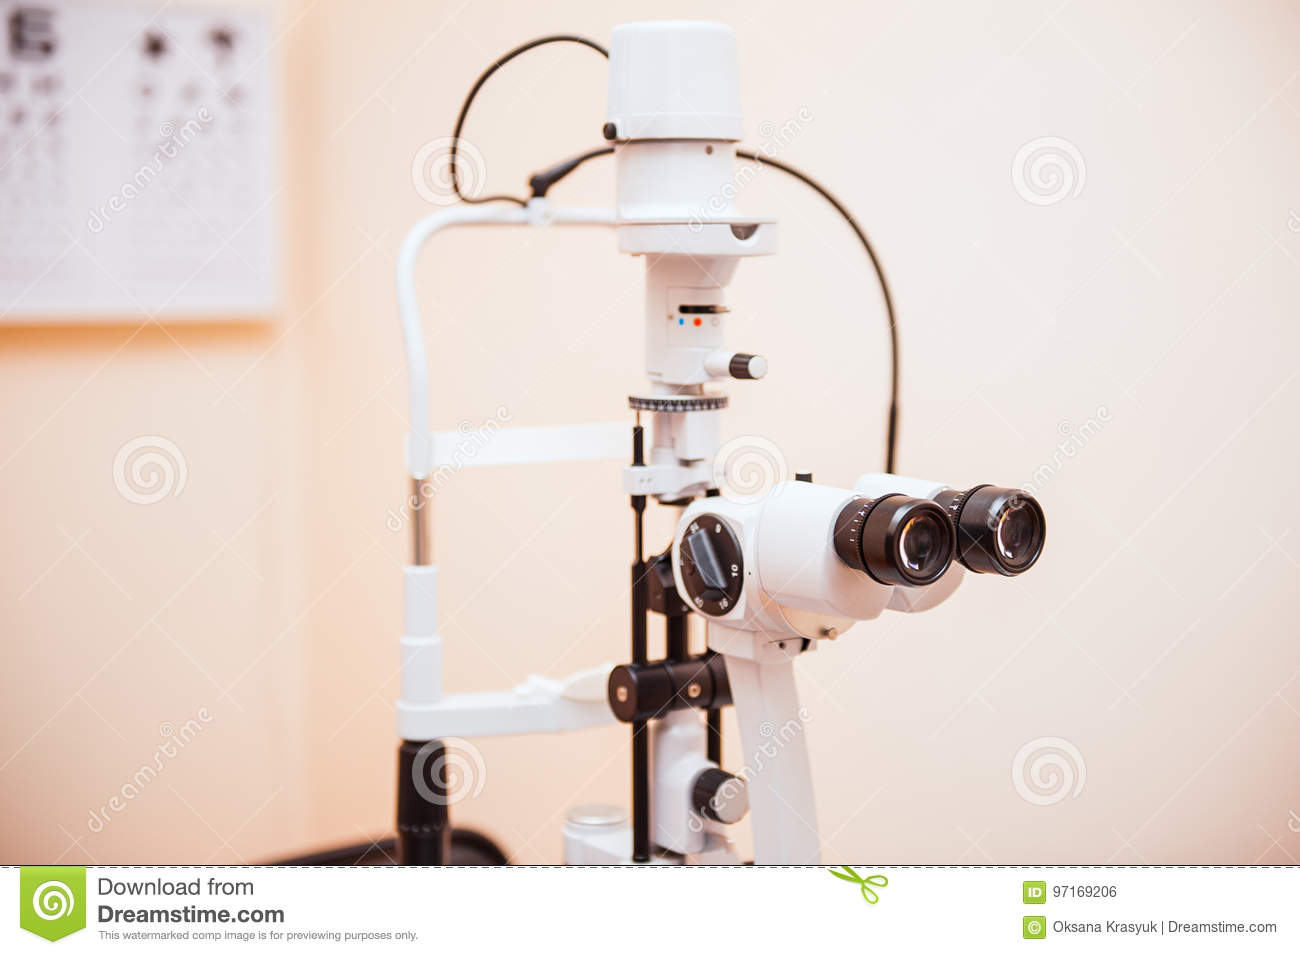 Health Care Concept - Close Up Slit Lamp, Biomicroscope  Ophthalmic